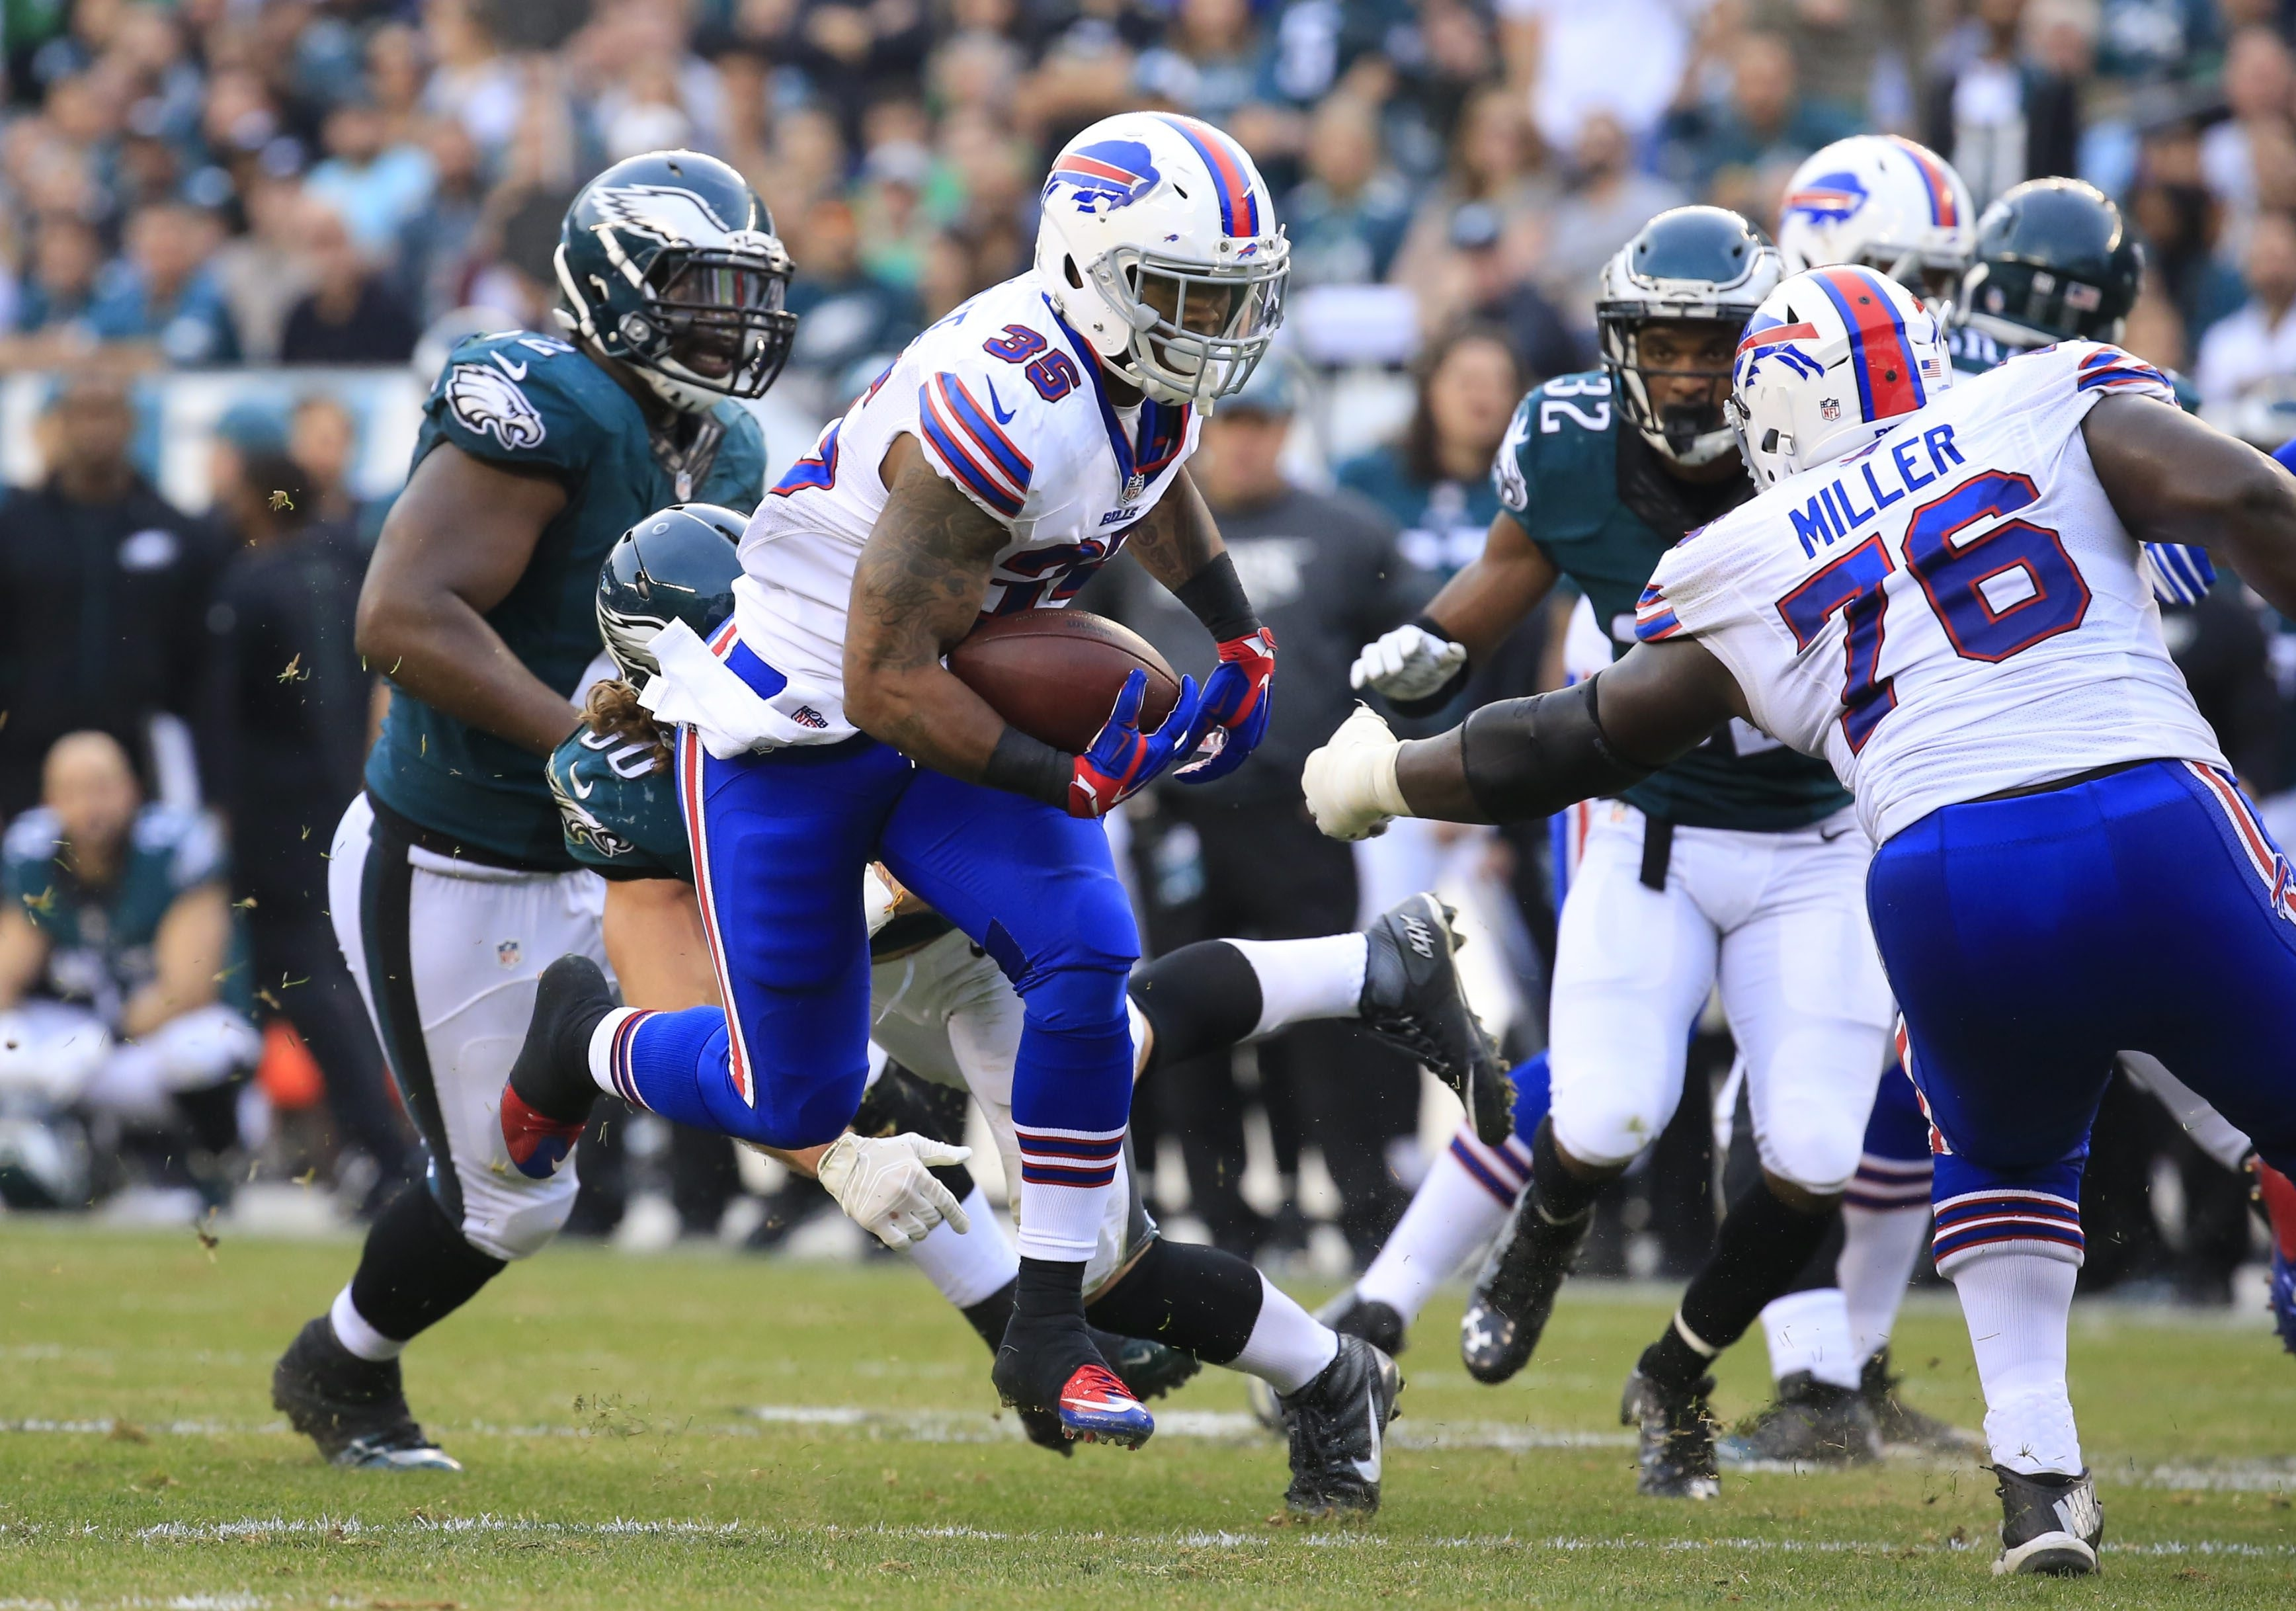 Buffalo Bills running back Mike Gillislee runs for a touchdown against the Philadelphia Eagles during second-half action at Lincoln Financial Field on Dec. 13, 2015.